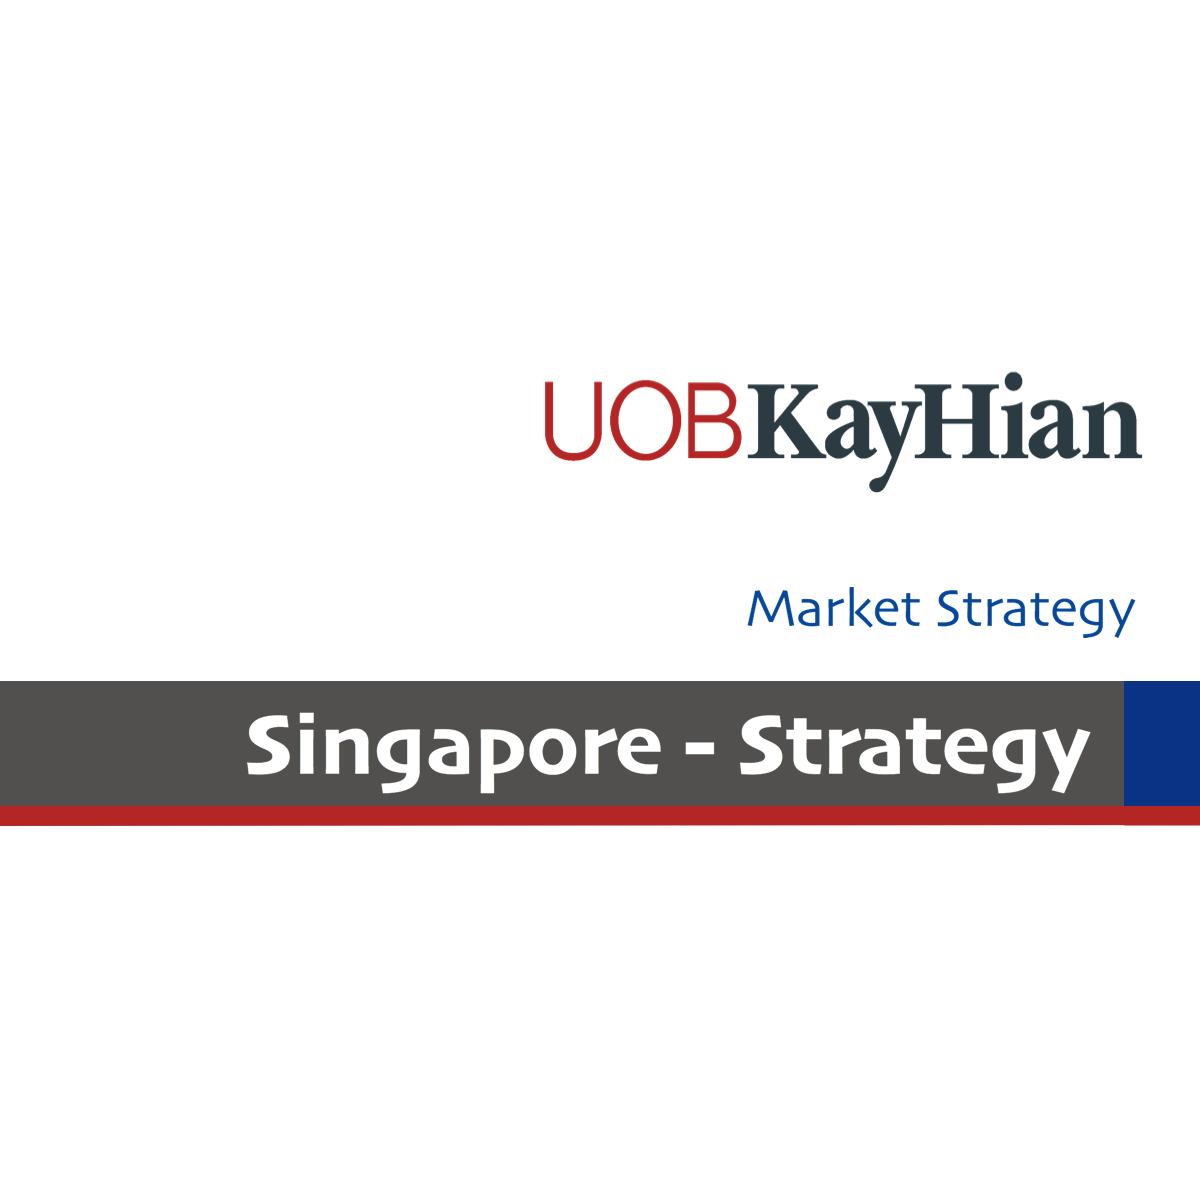 2H18 Market Strategy - UOB Kay Hian 2018-06-01: Investment Themes For The Rest Of 2018